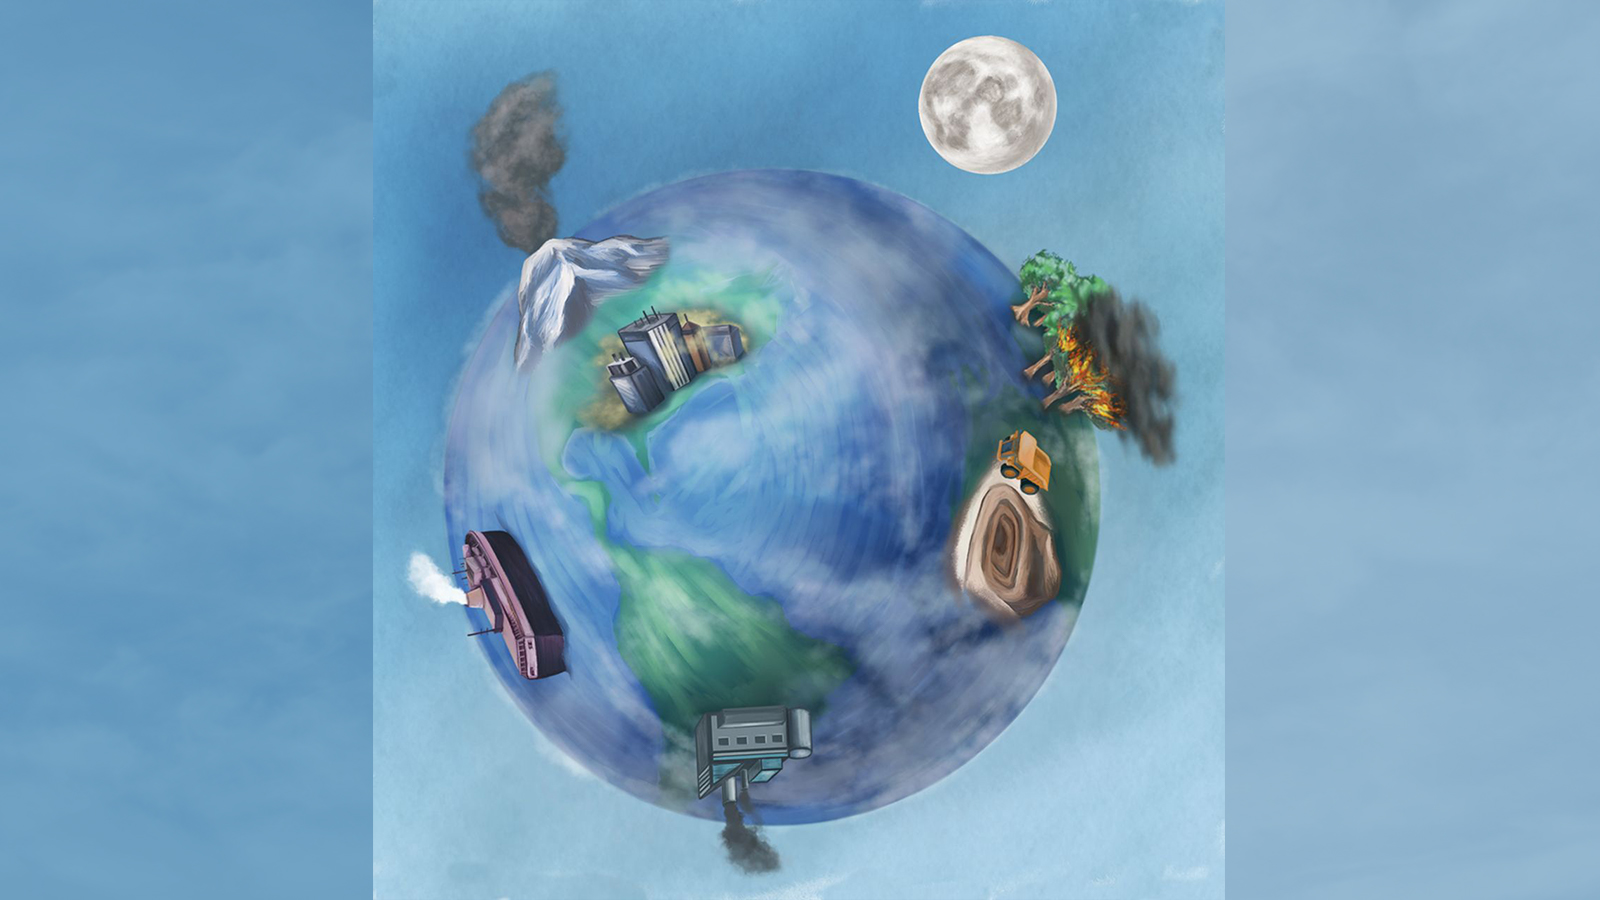 Drawing of the earth with industrial systems drawn larger than life all around the globe.